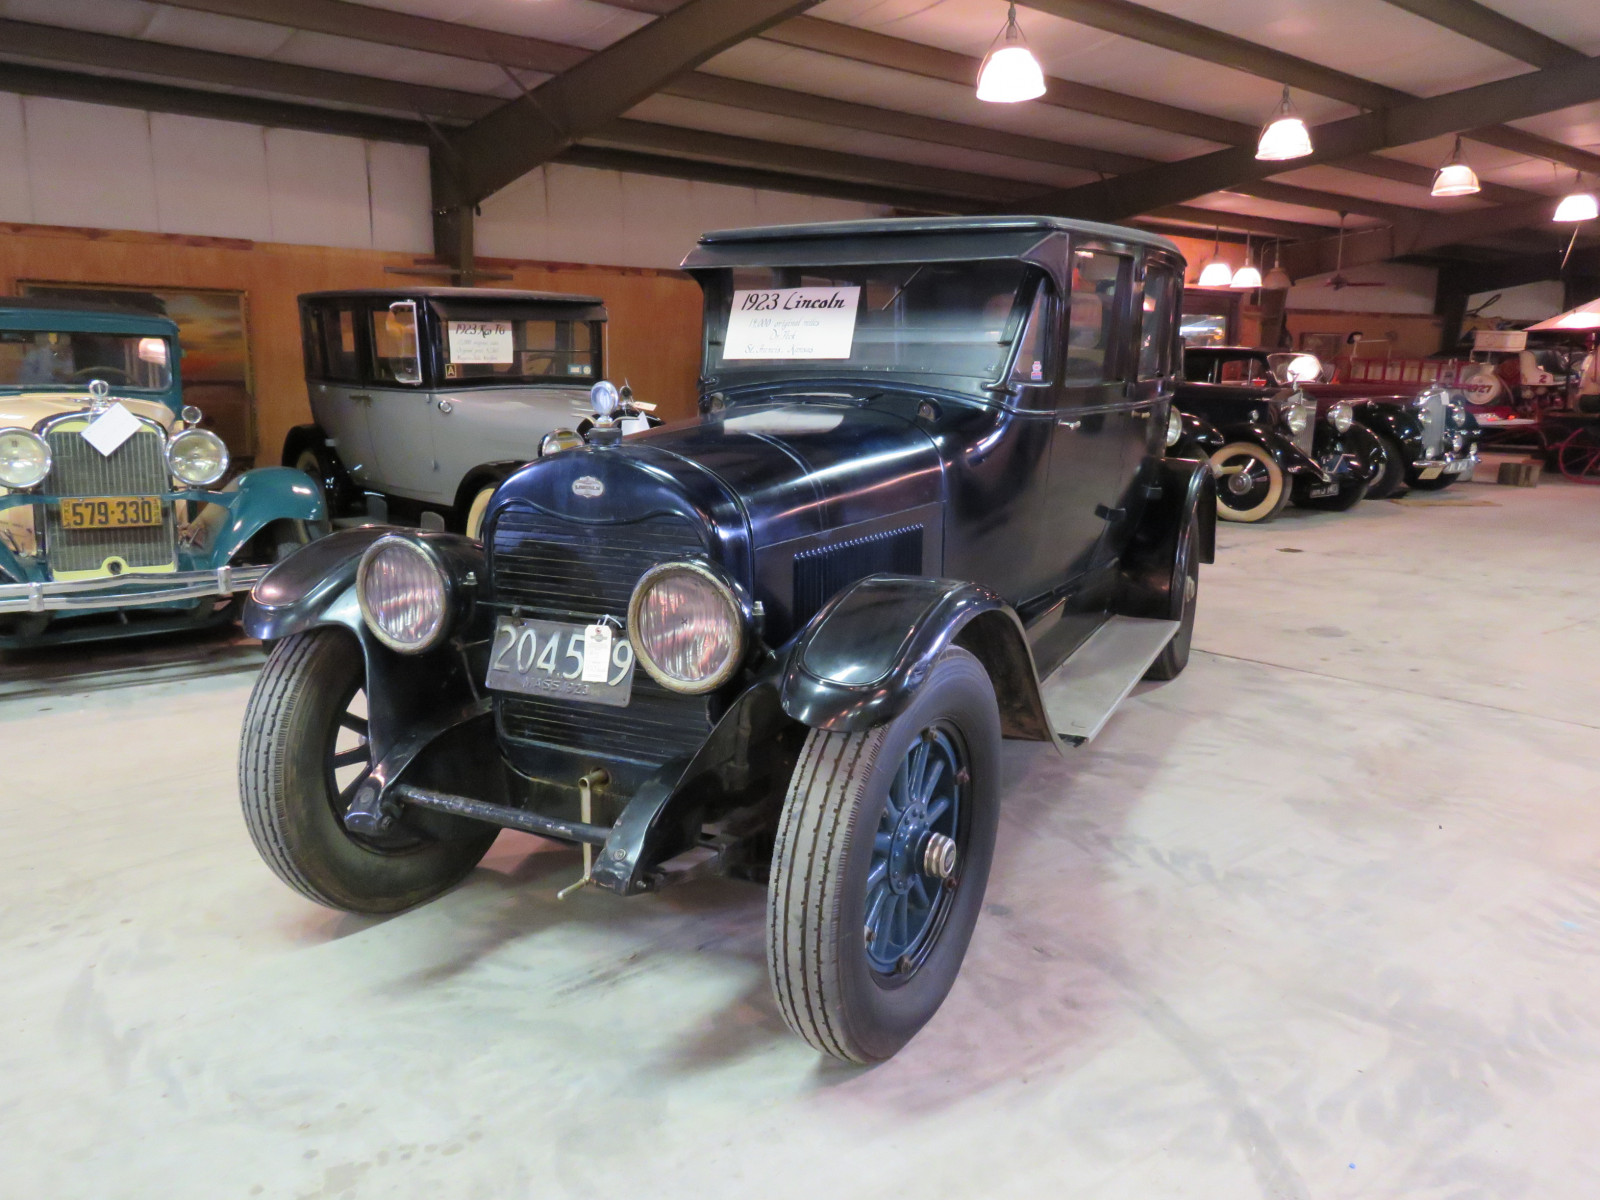 1923 Lincoln Model L 4dr Sedan - Image 1